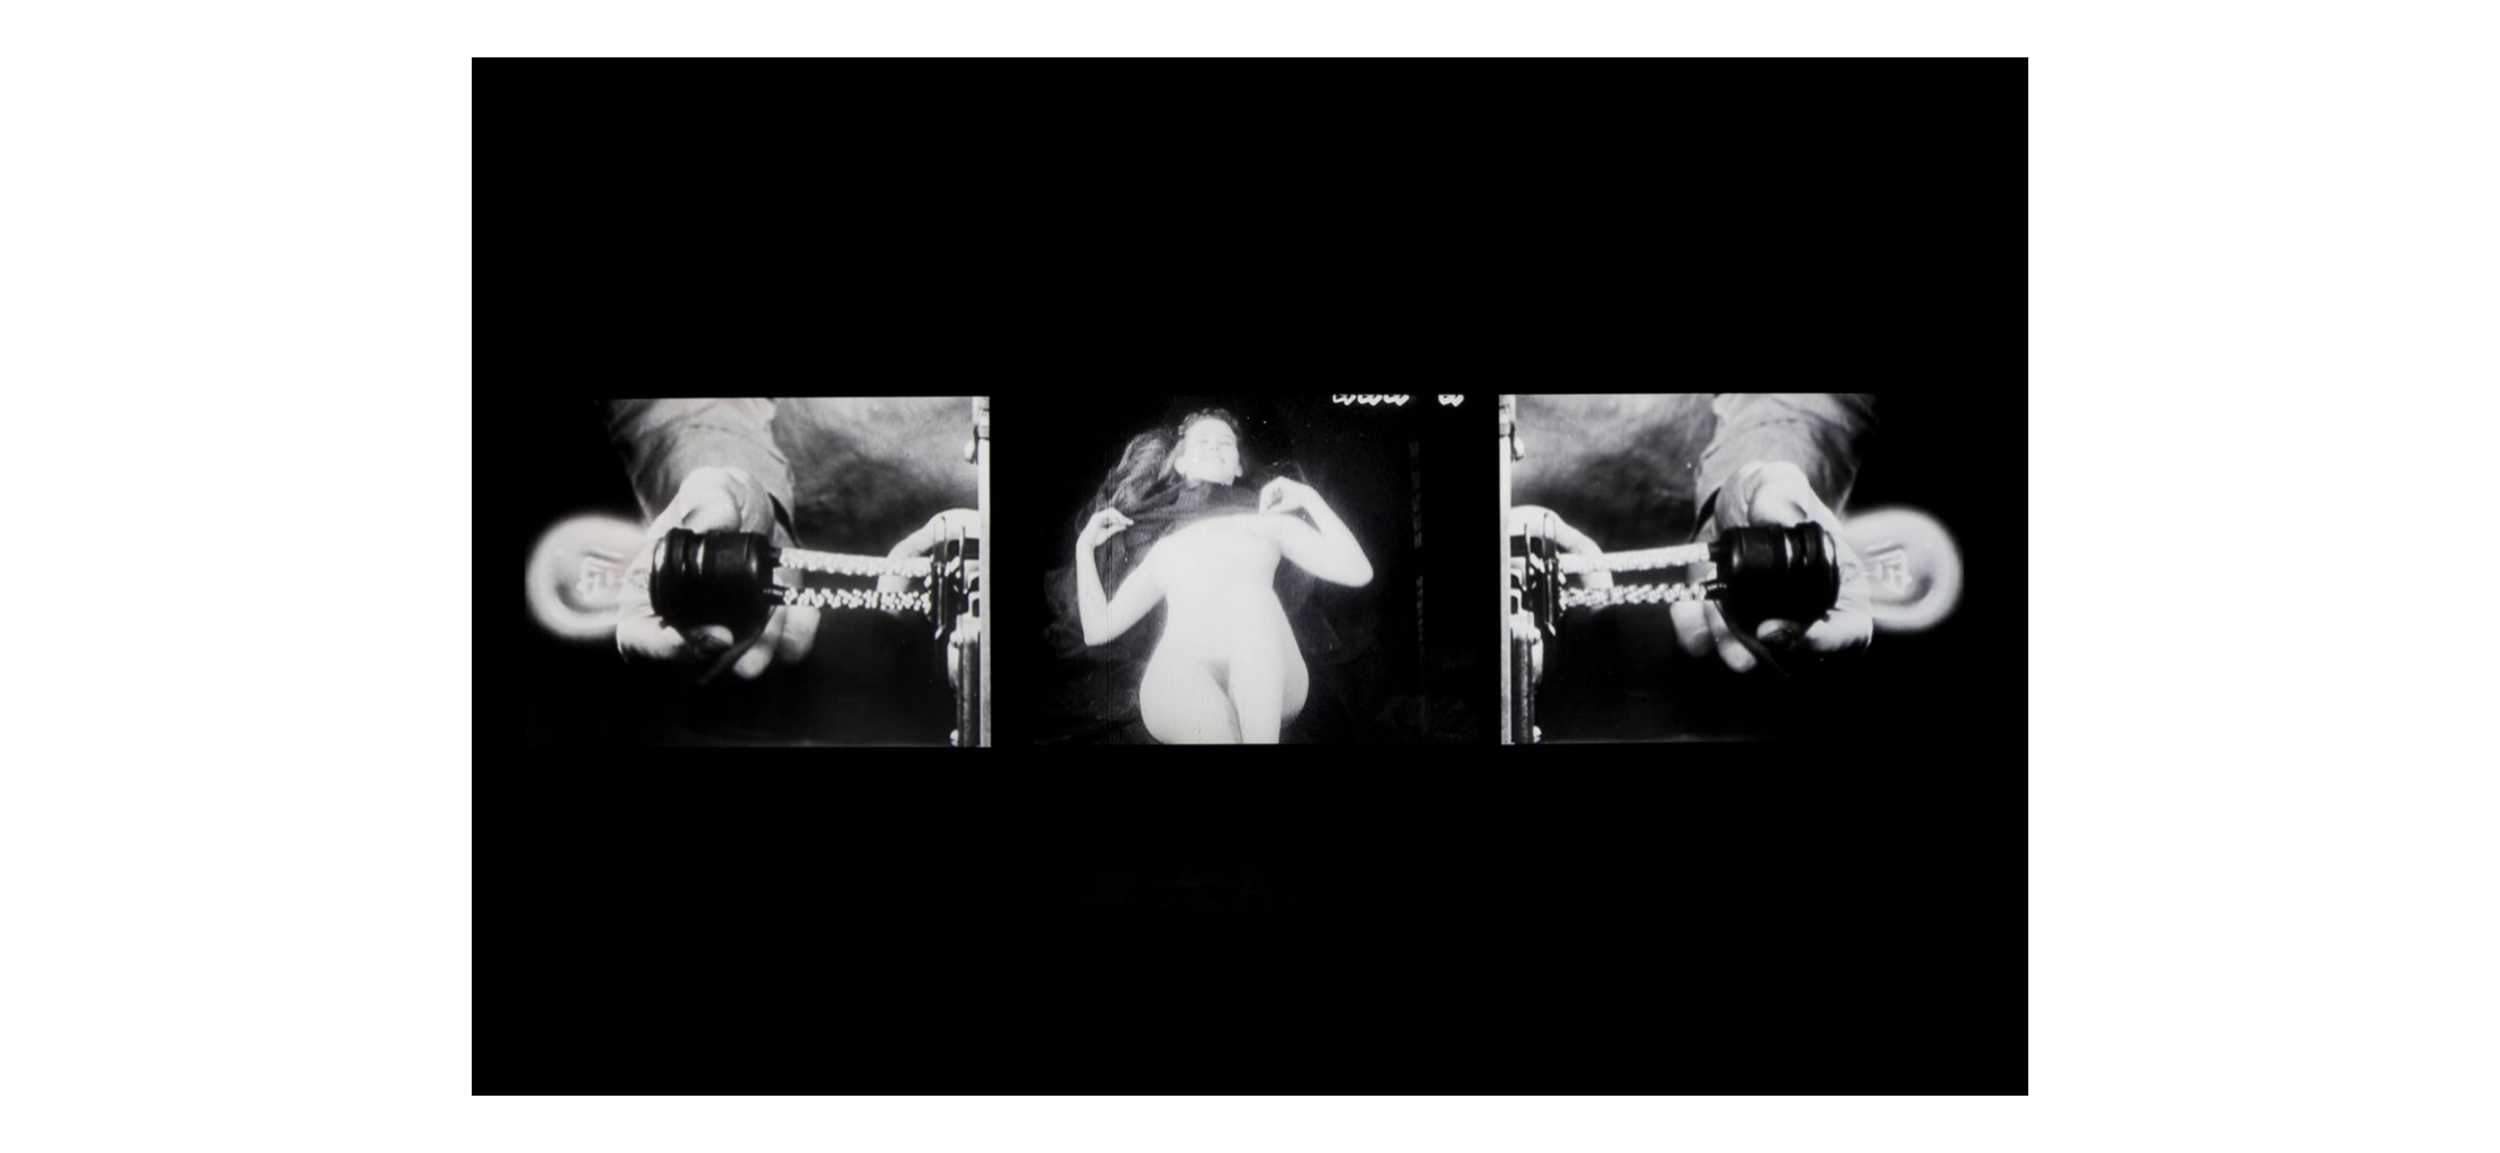 Bruce Conner,THREE SCREEN RAY, 2006; Three-channel video installation, with sound, 5:14 min., Dimensions variable; Collection SFMOMA, San Francisco Museum of Modern Art. Accessions Committee Fund purchase; © Conner Family Trust, San Francisco  sfmoma.org